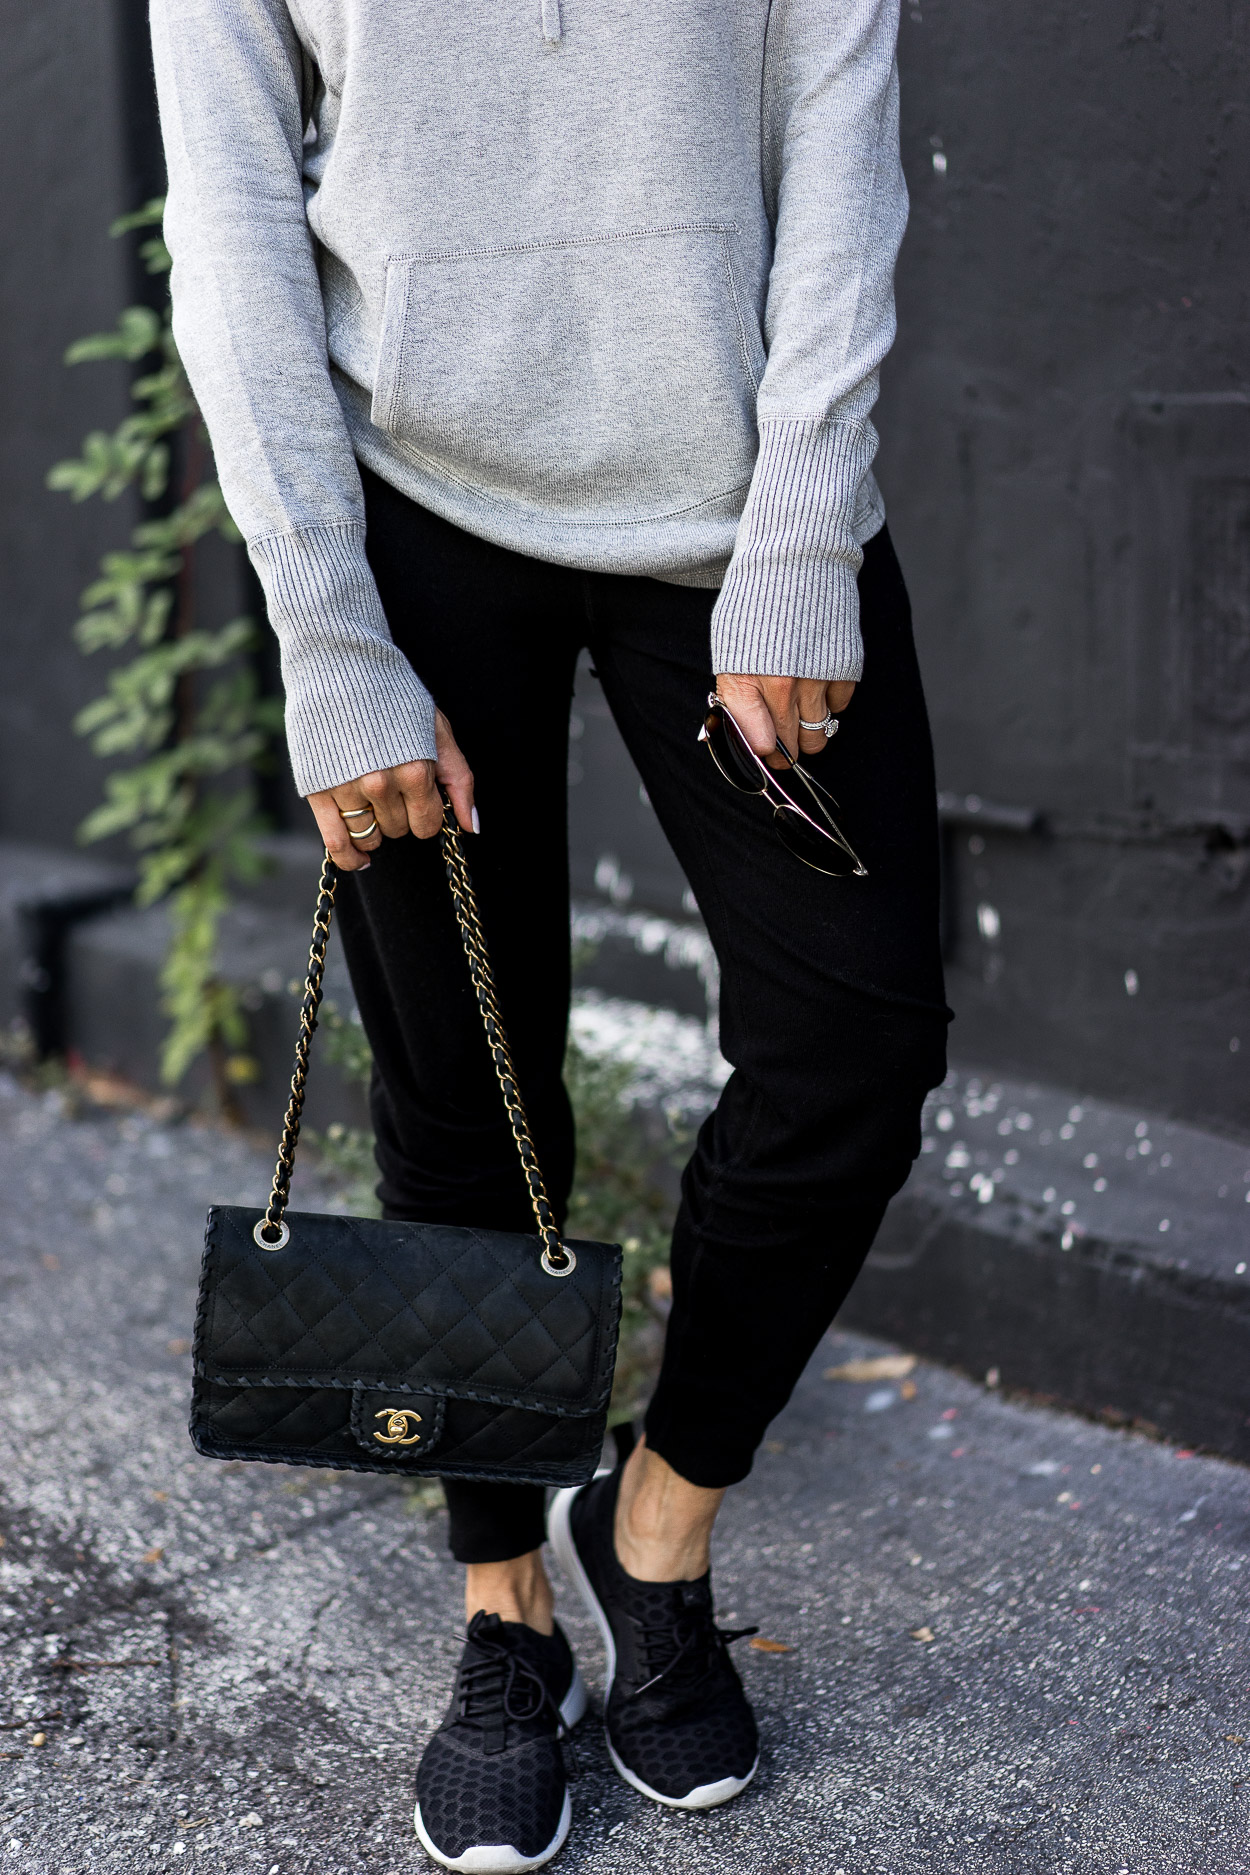 Leimere cashmere joggers review by A Glam Lifestyle blog who paired the affordable cashmere with her Chanel bag and Nike sneakers